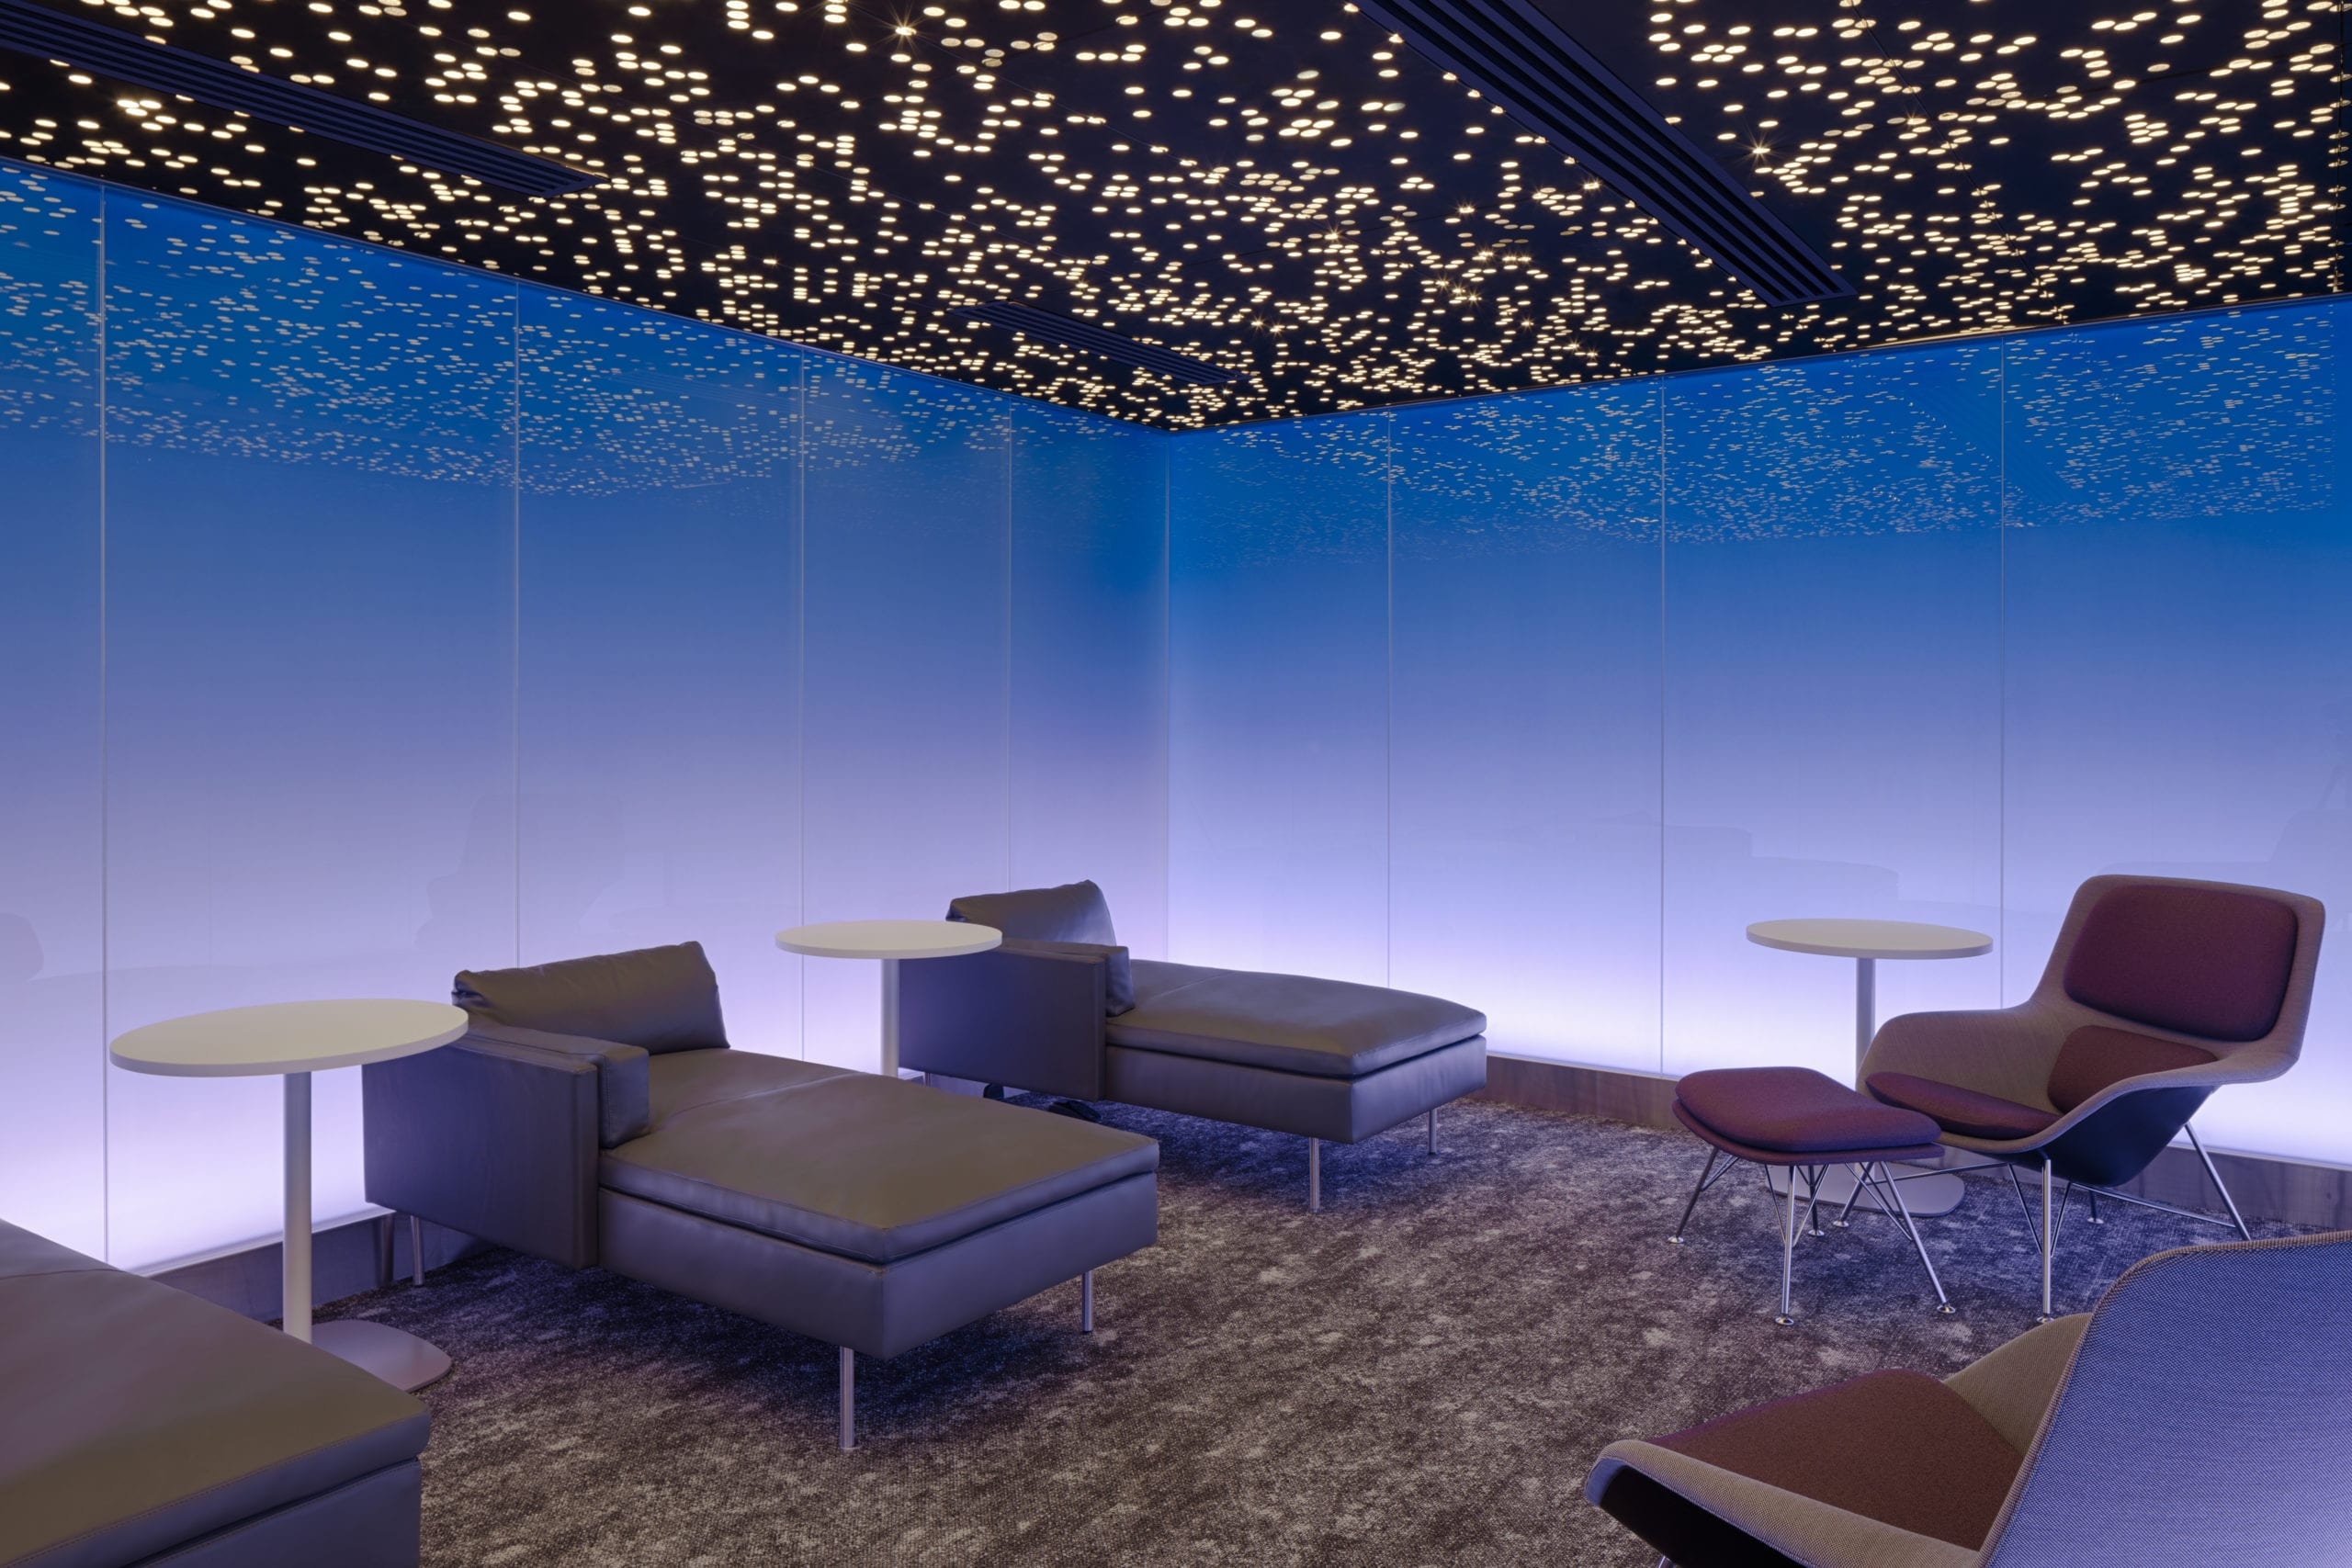 Moonrise Tranquility Room at Centurion Lounge at LAX scaled